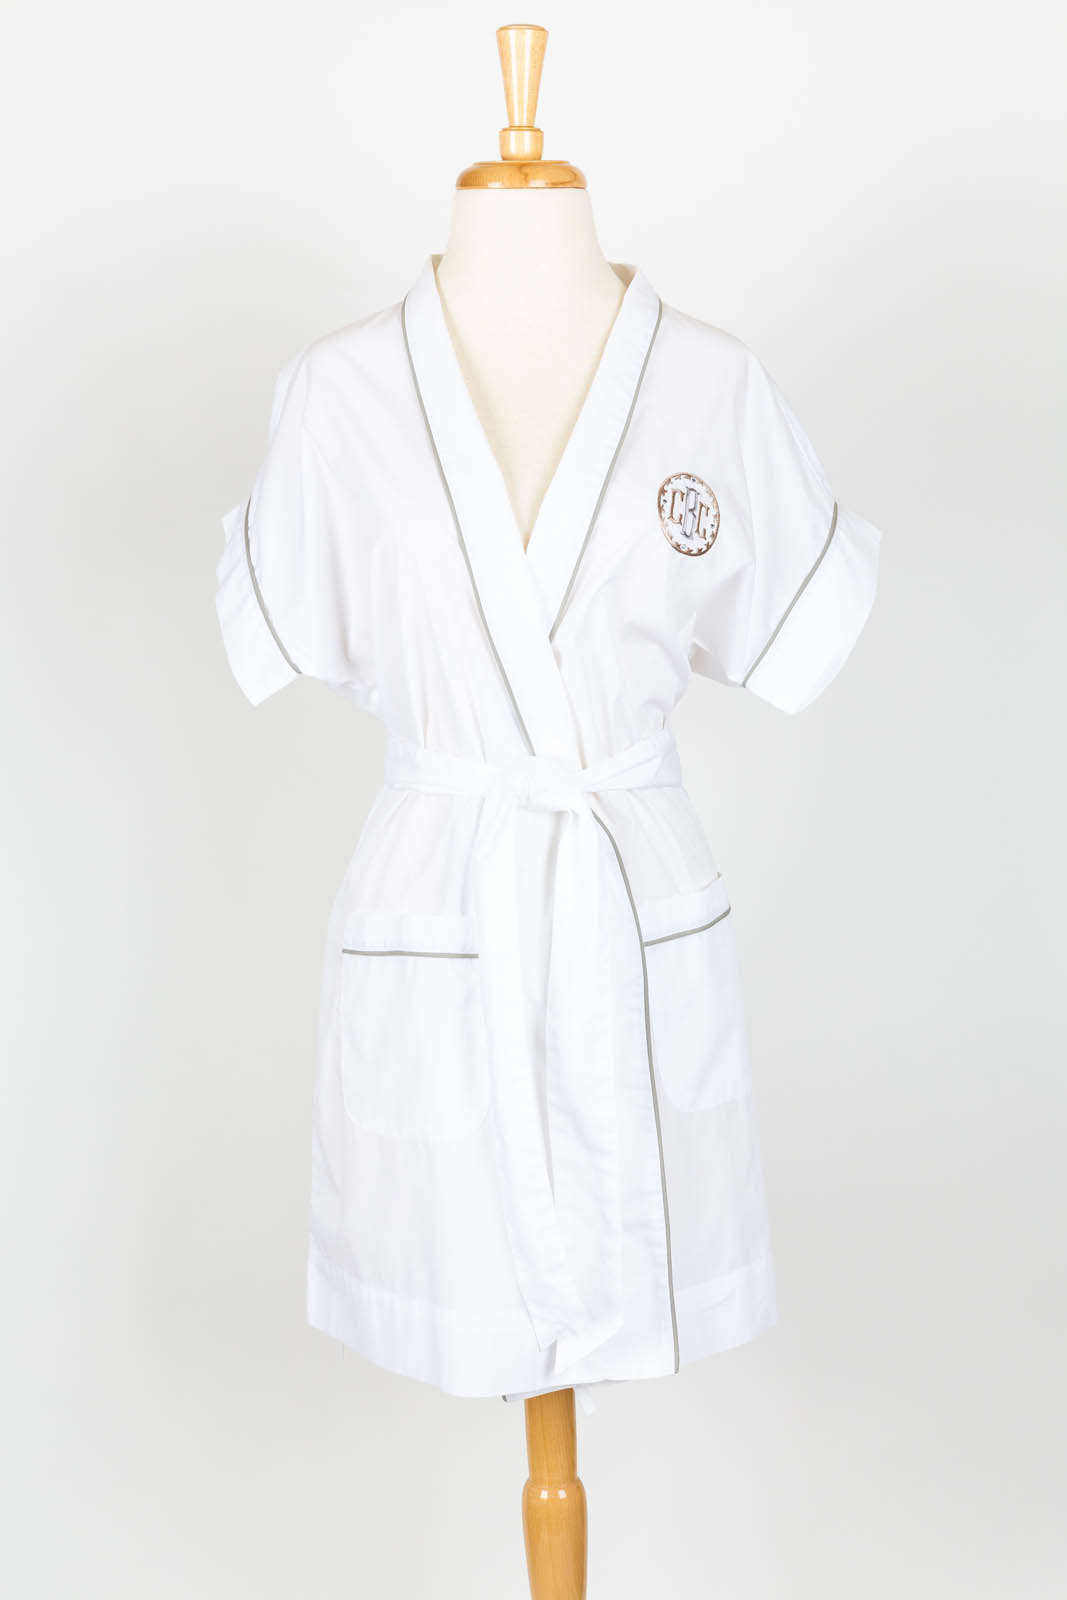 Short Sleeve kimono robe in white poplin with Annabelle Monogram